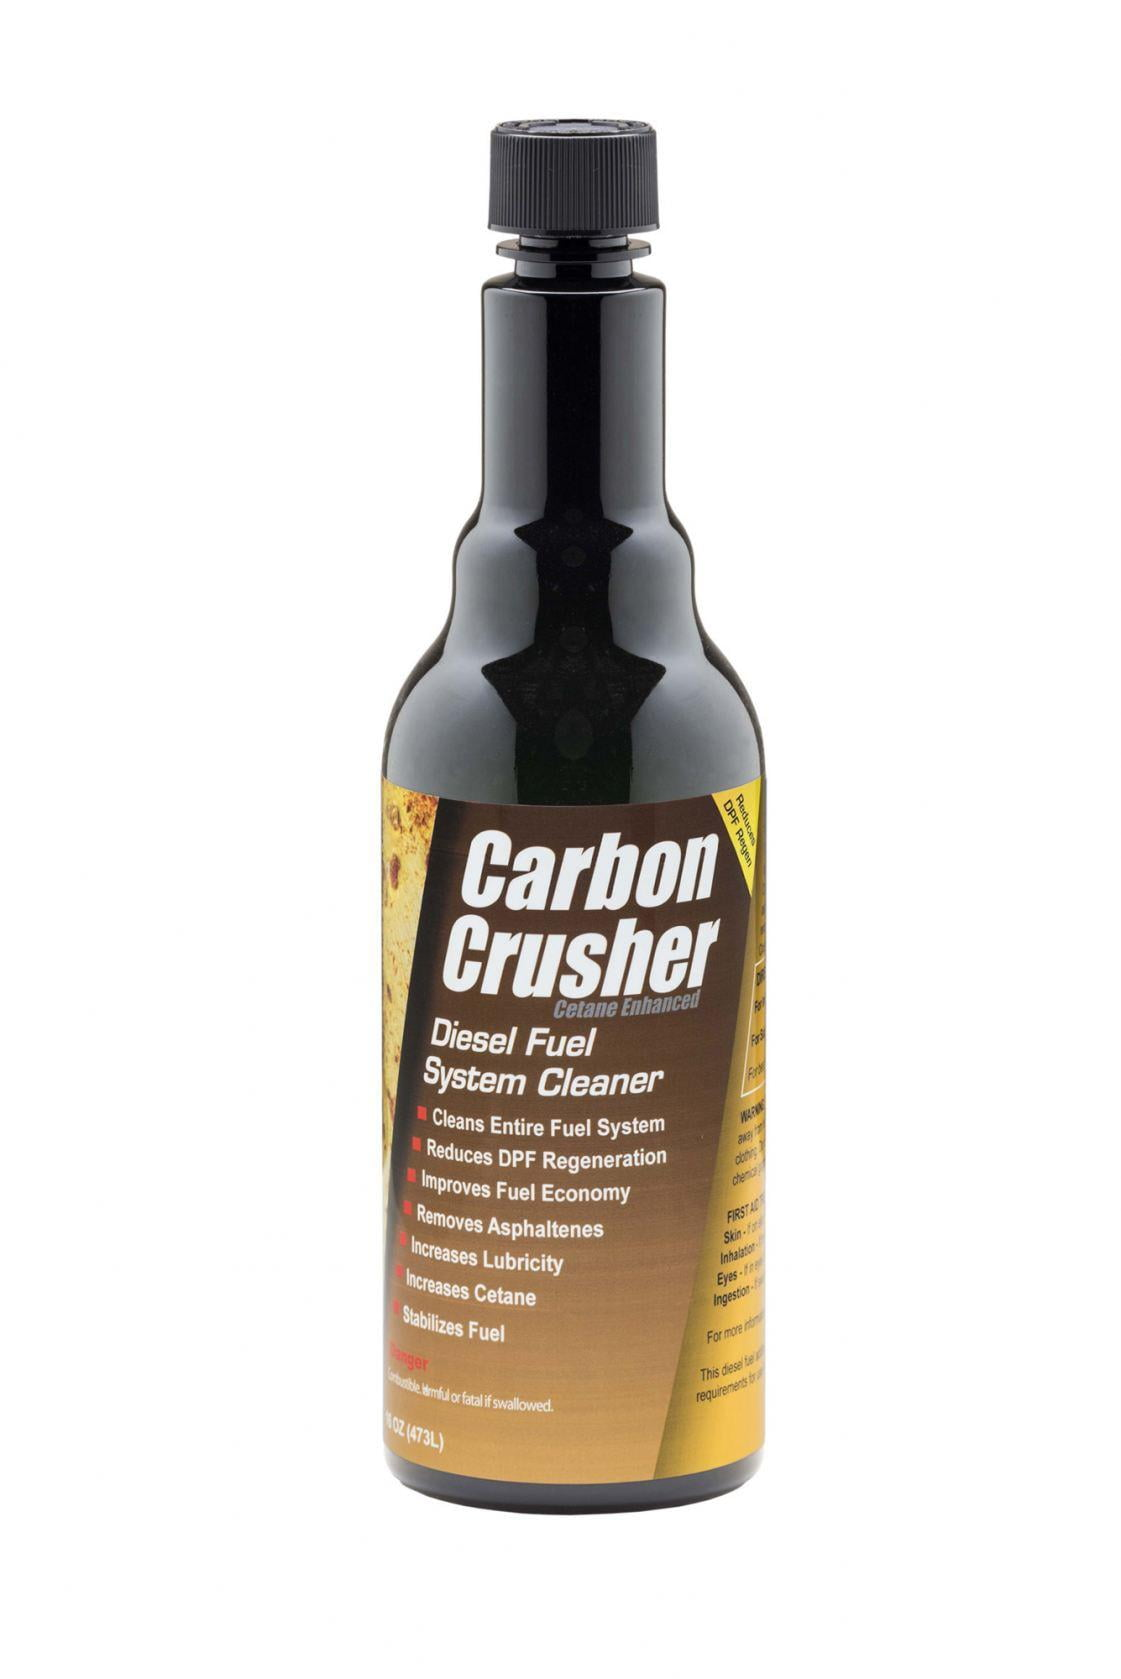 Carbon Crusher is a Complete Fuel System Cleaner from E-ZOIL